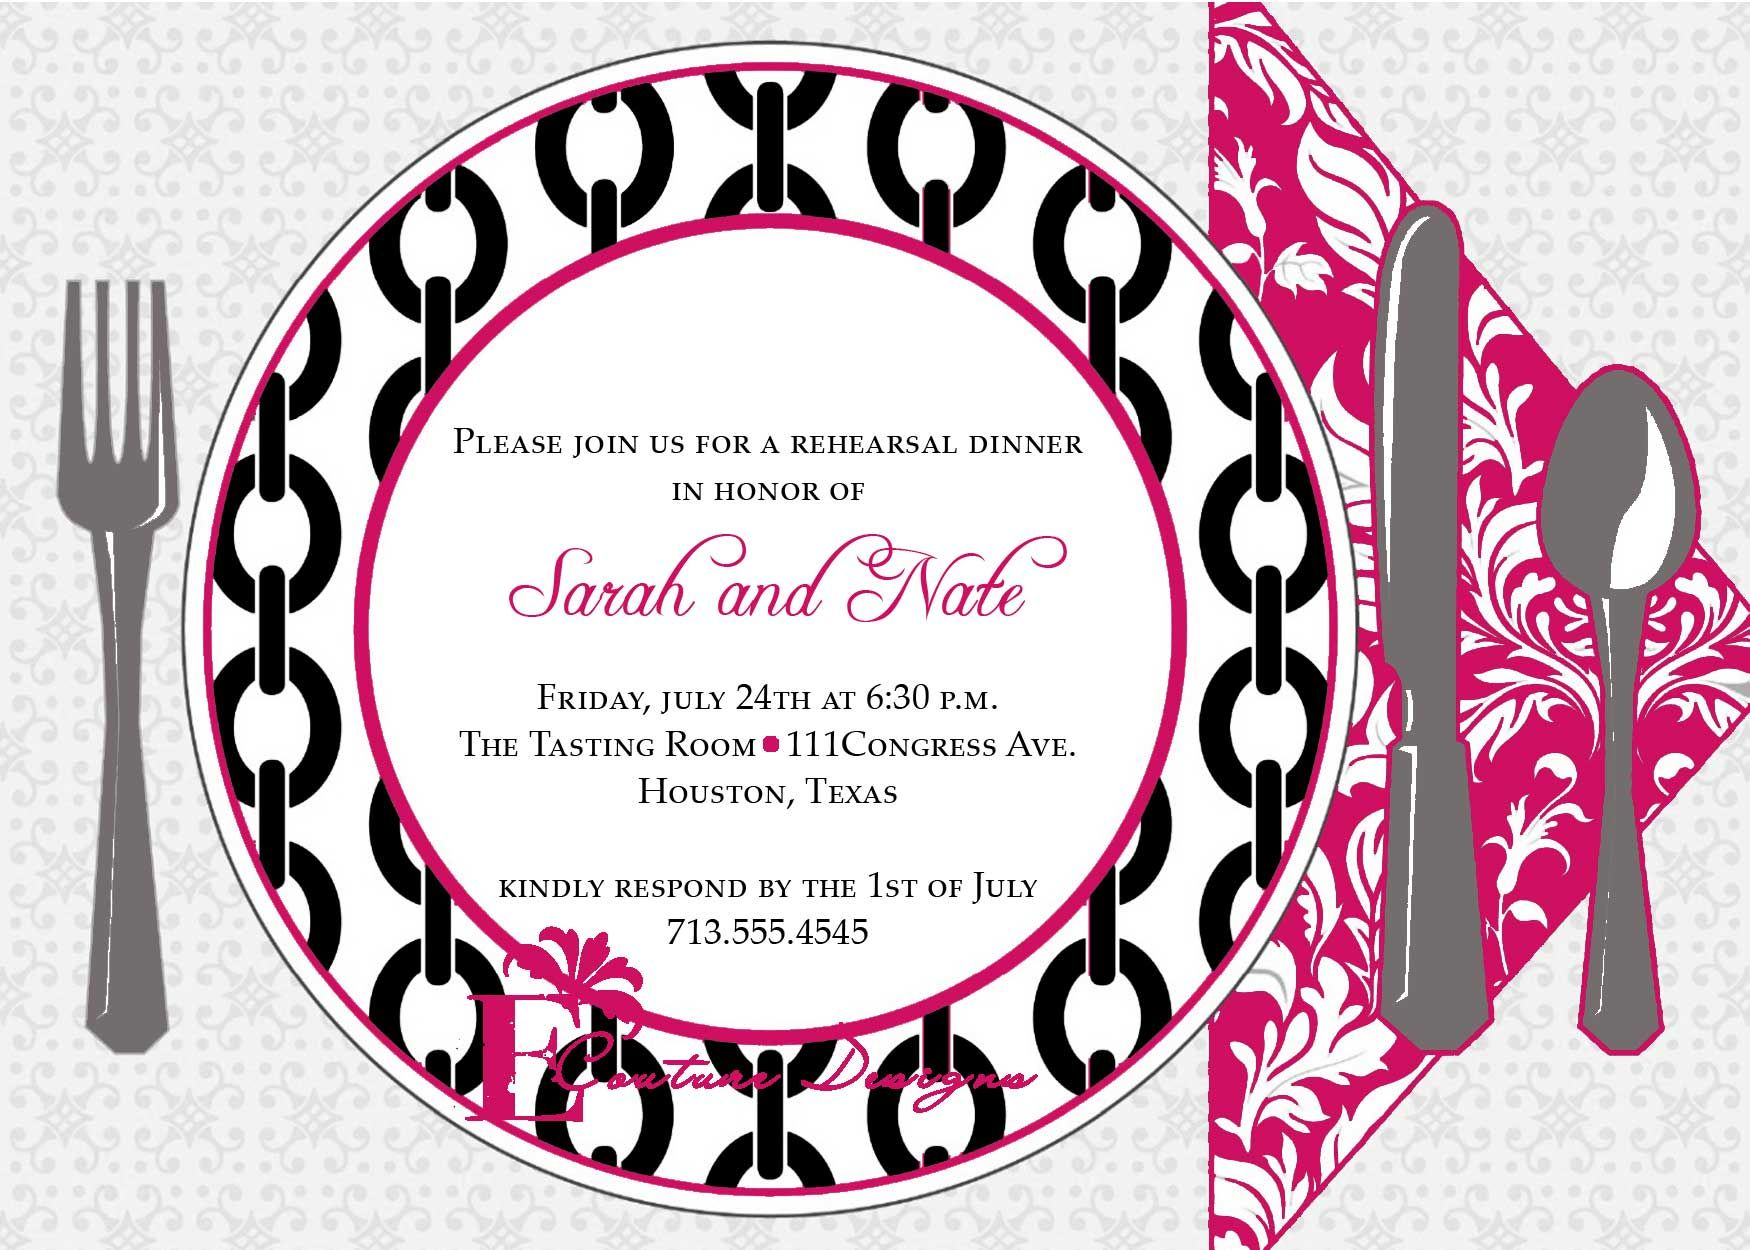 Dinner Invitation Template | Invitation Templates  Dinner Invitation Template